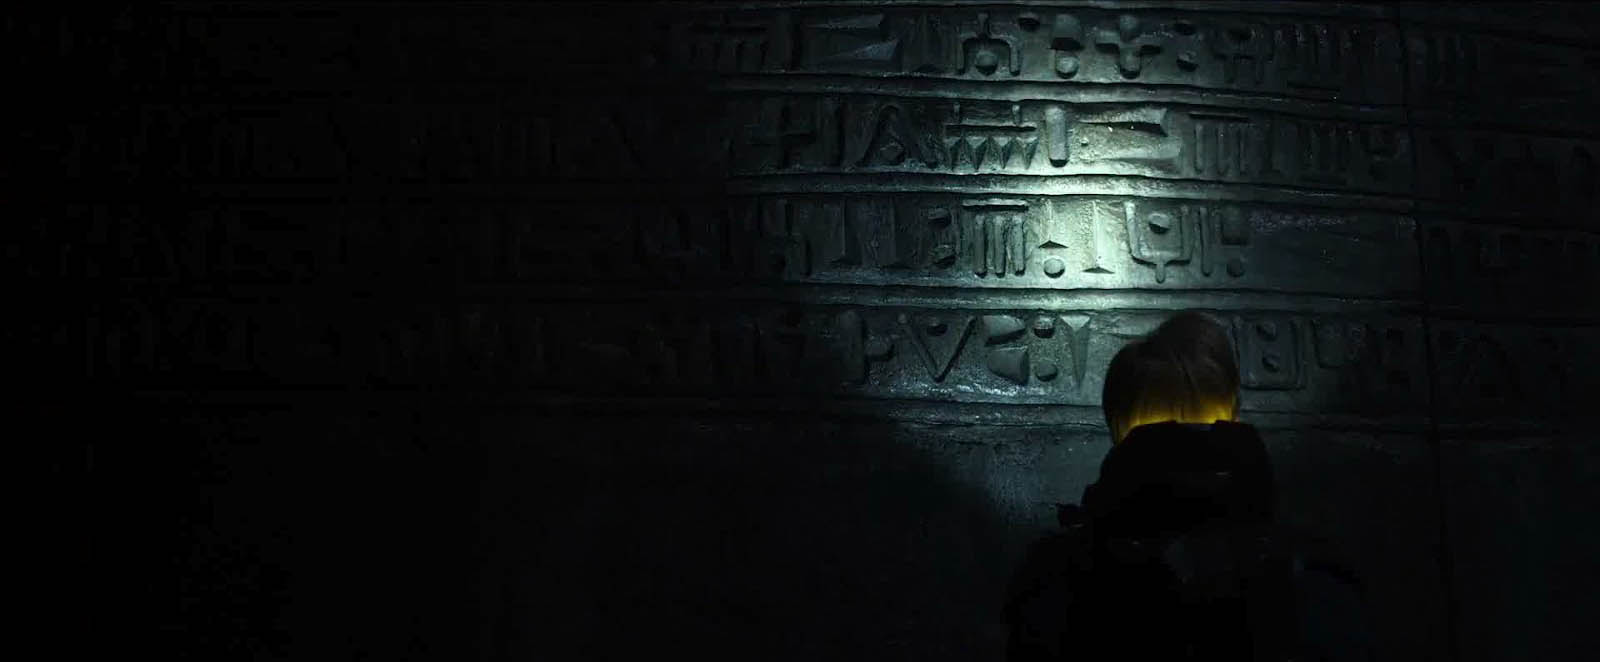 Image engineer temple hieroglyphs png xenopedia for Prometheus xenomorph mural